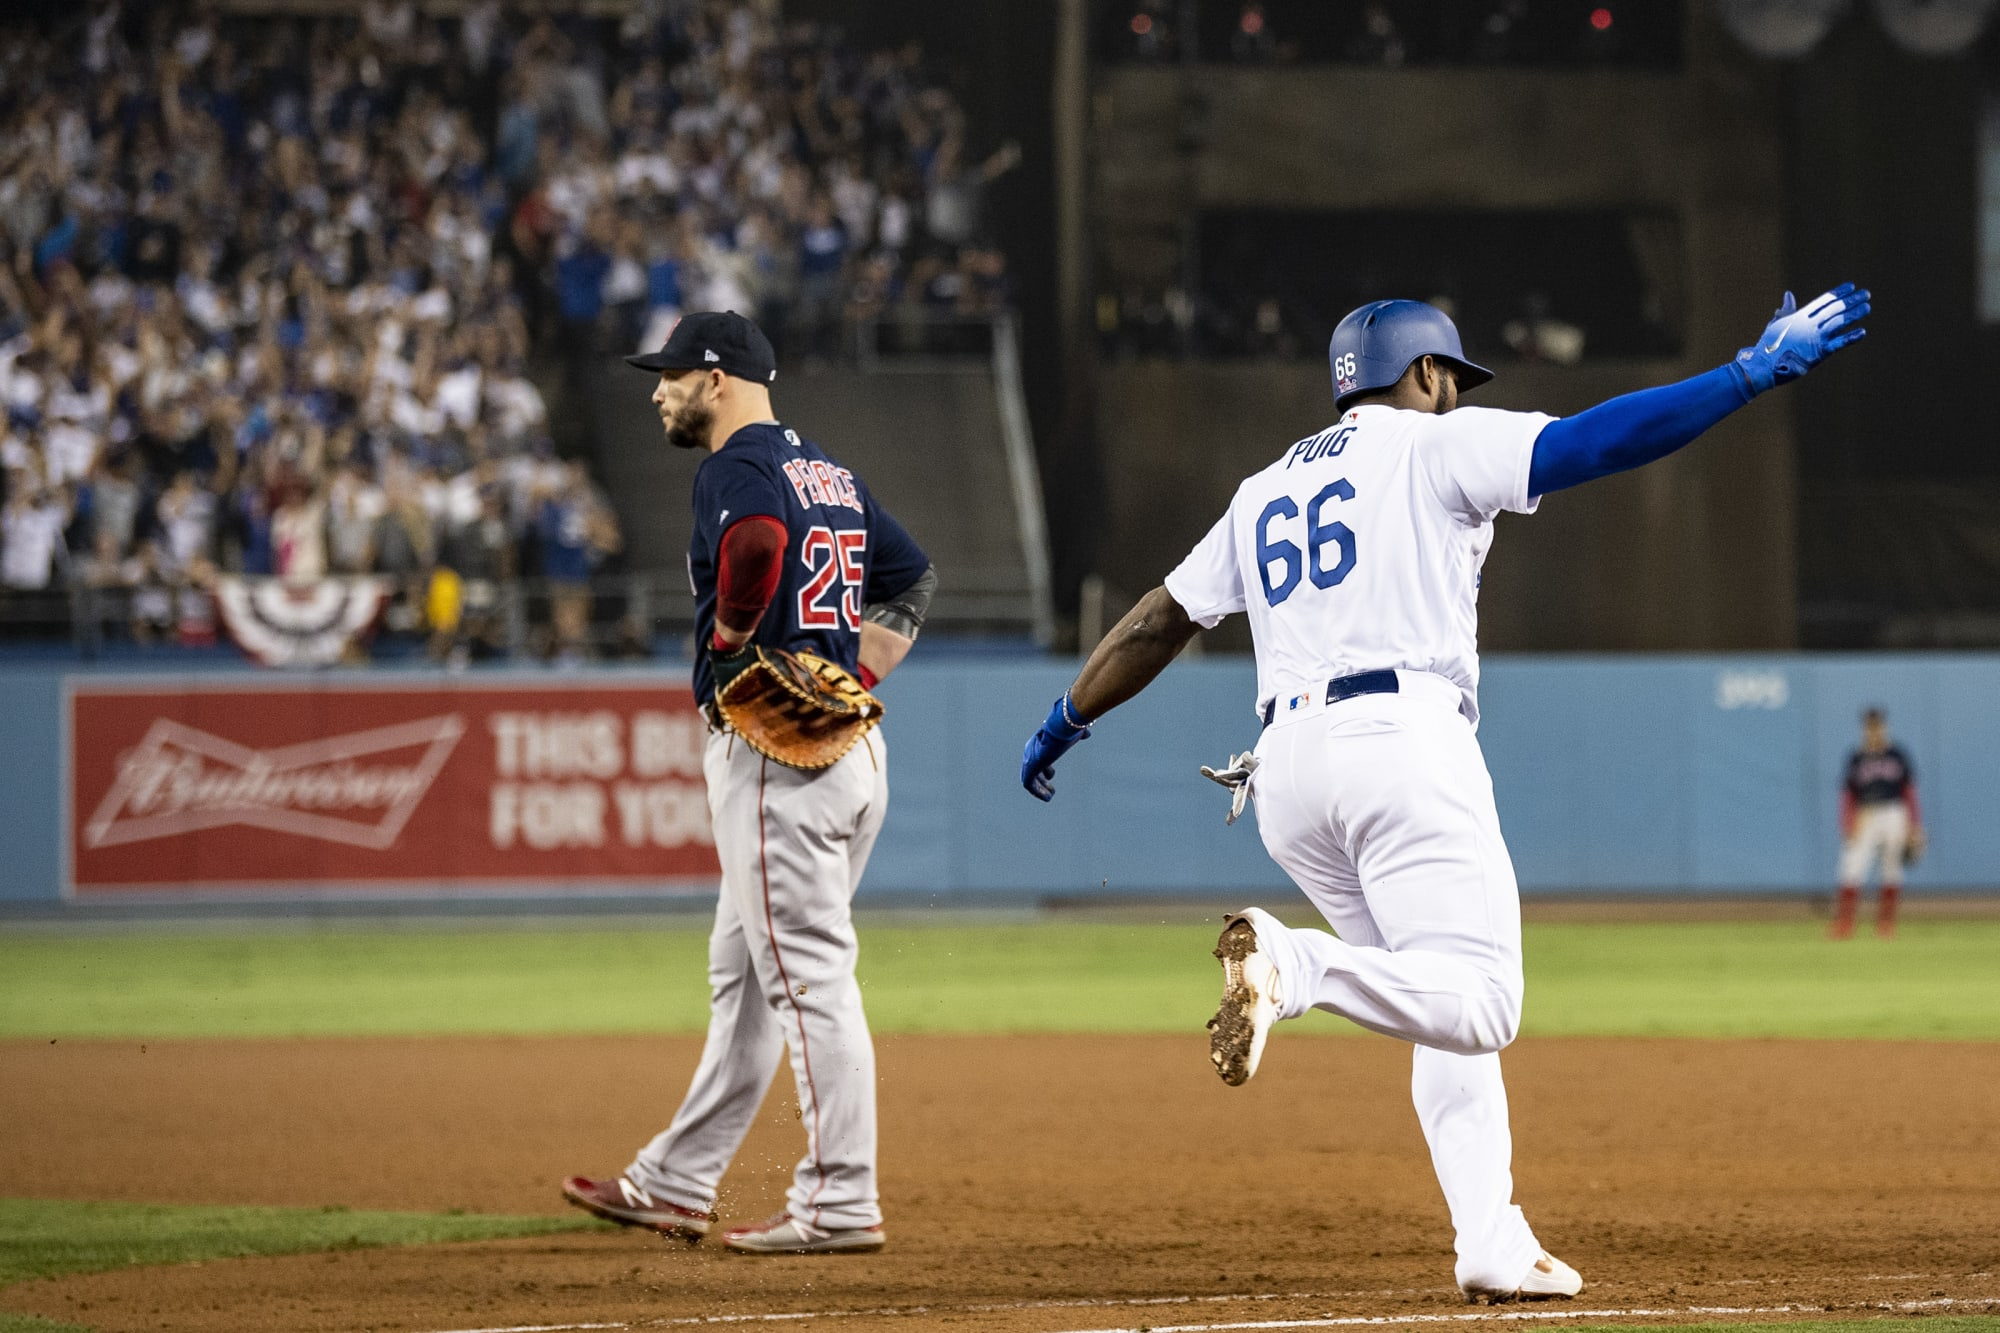 Los Angeles Dodgers: Time for Yasiel Puig to look overseas